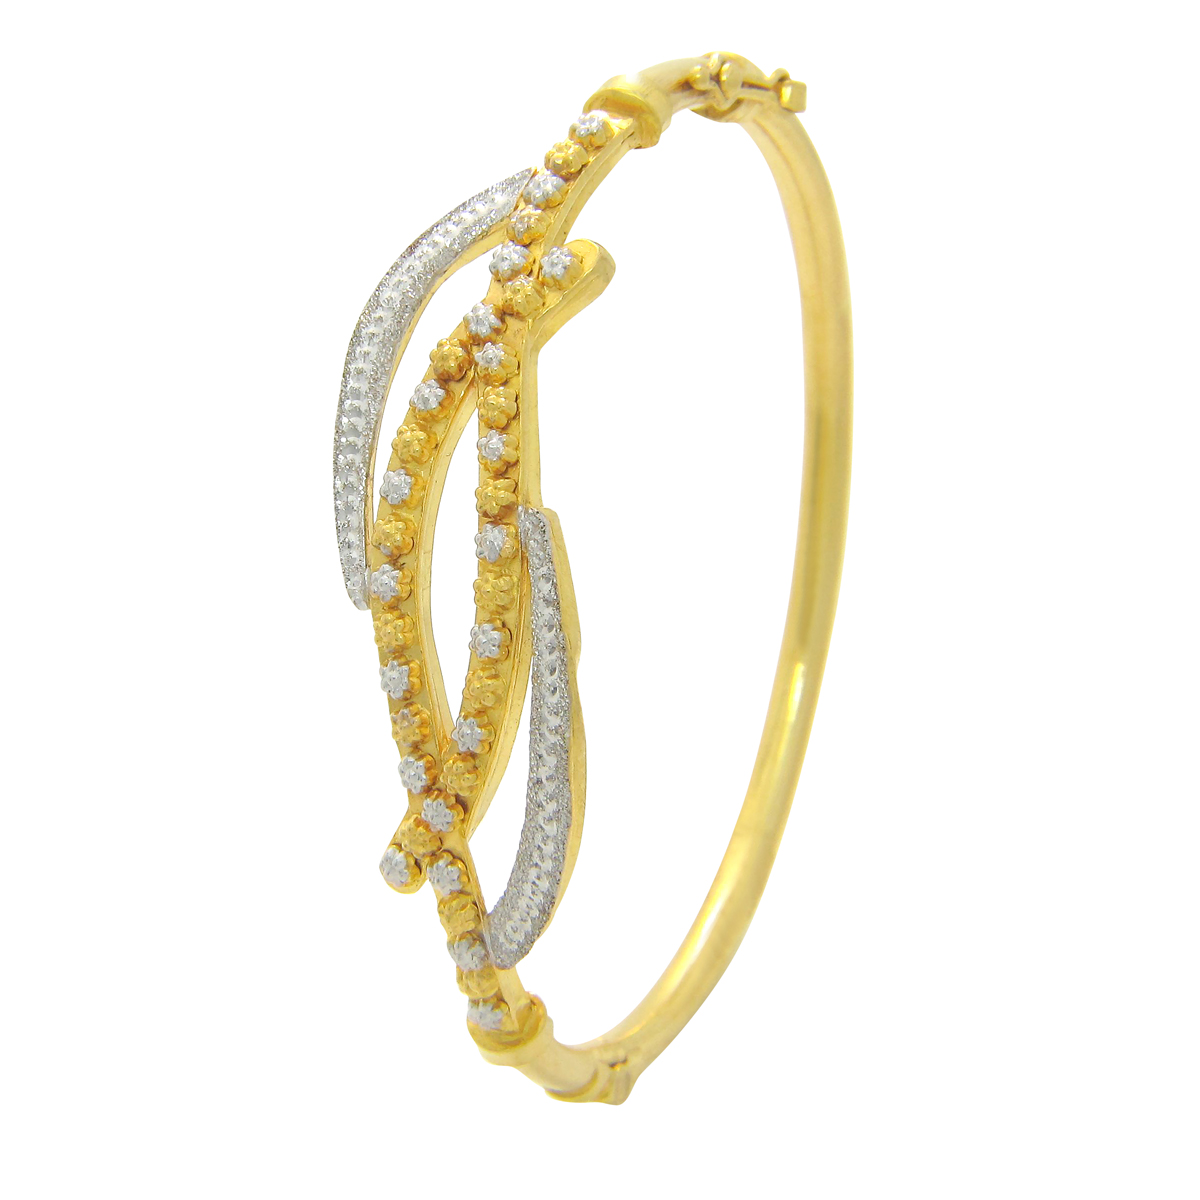 Popley 22Kt Gold Bandhan Bangle - A86